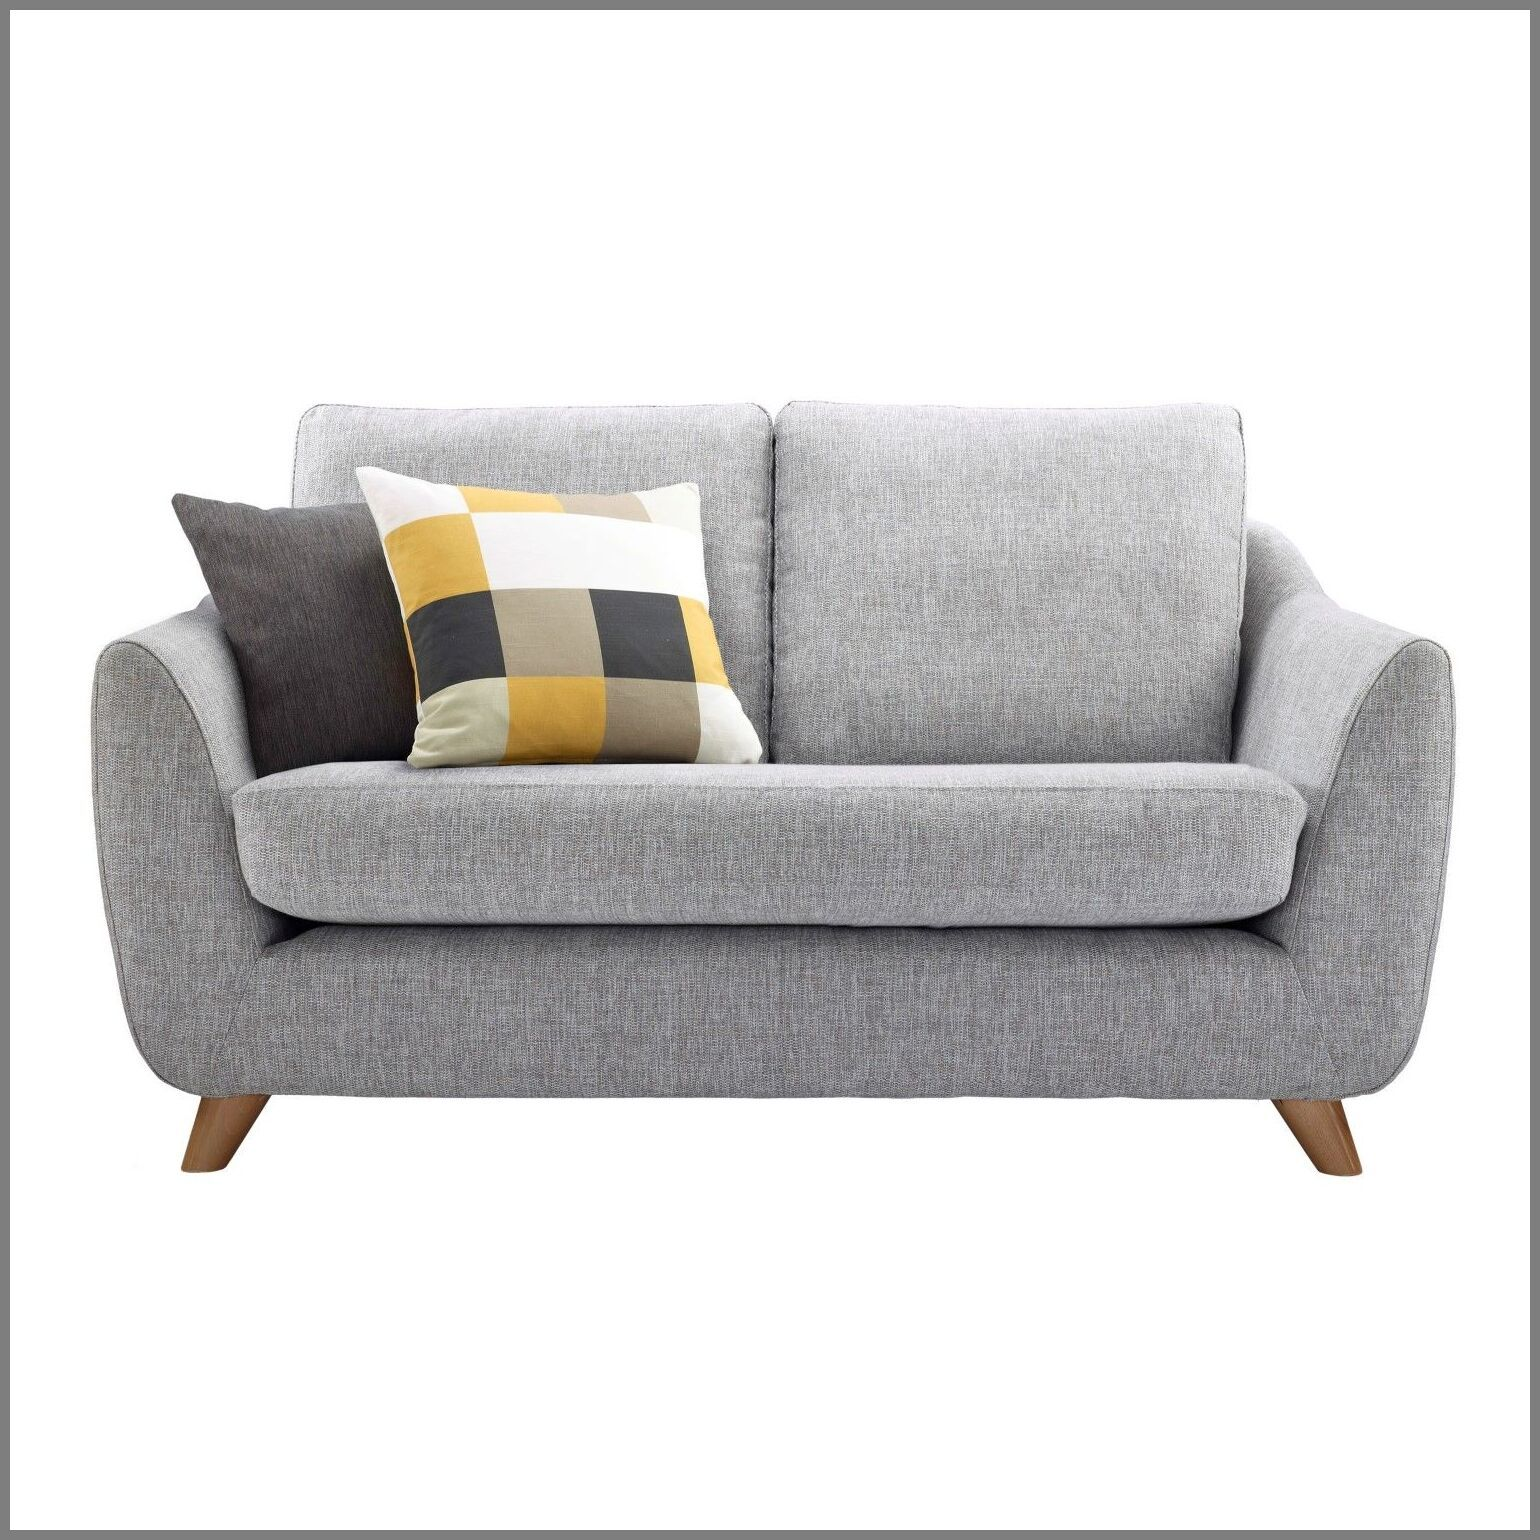 85 Reference Of Cheap Couch For Room In 2020 Cheap Small Sofa Small Sofa Sofas For Small Spaces